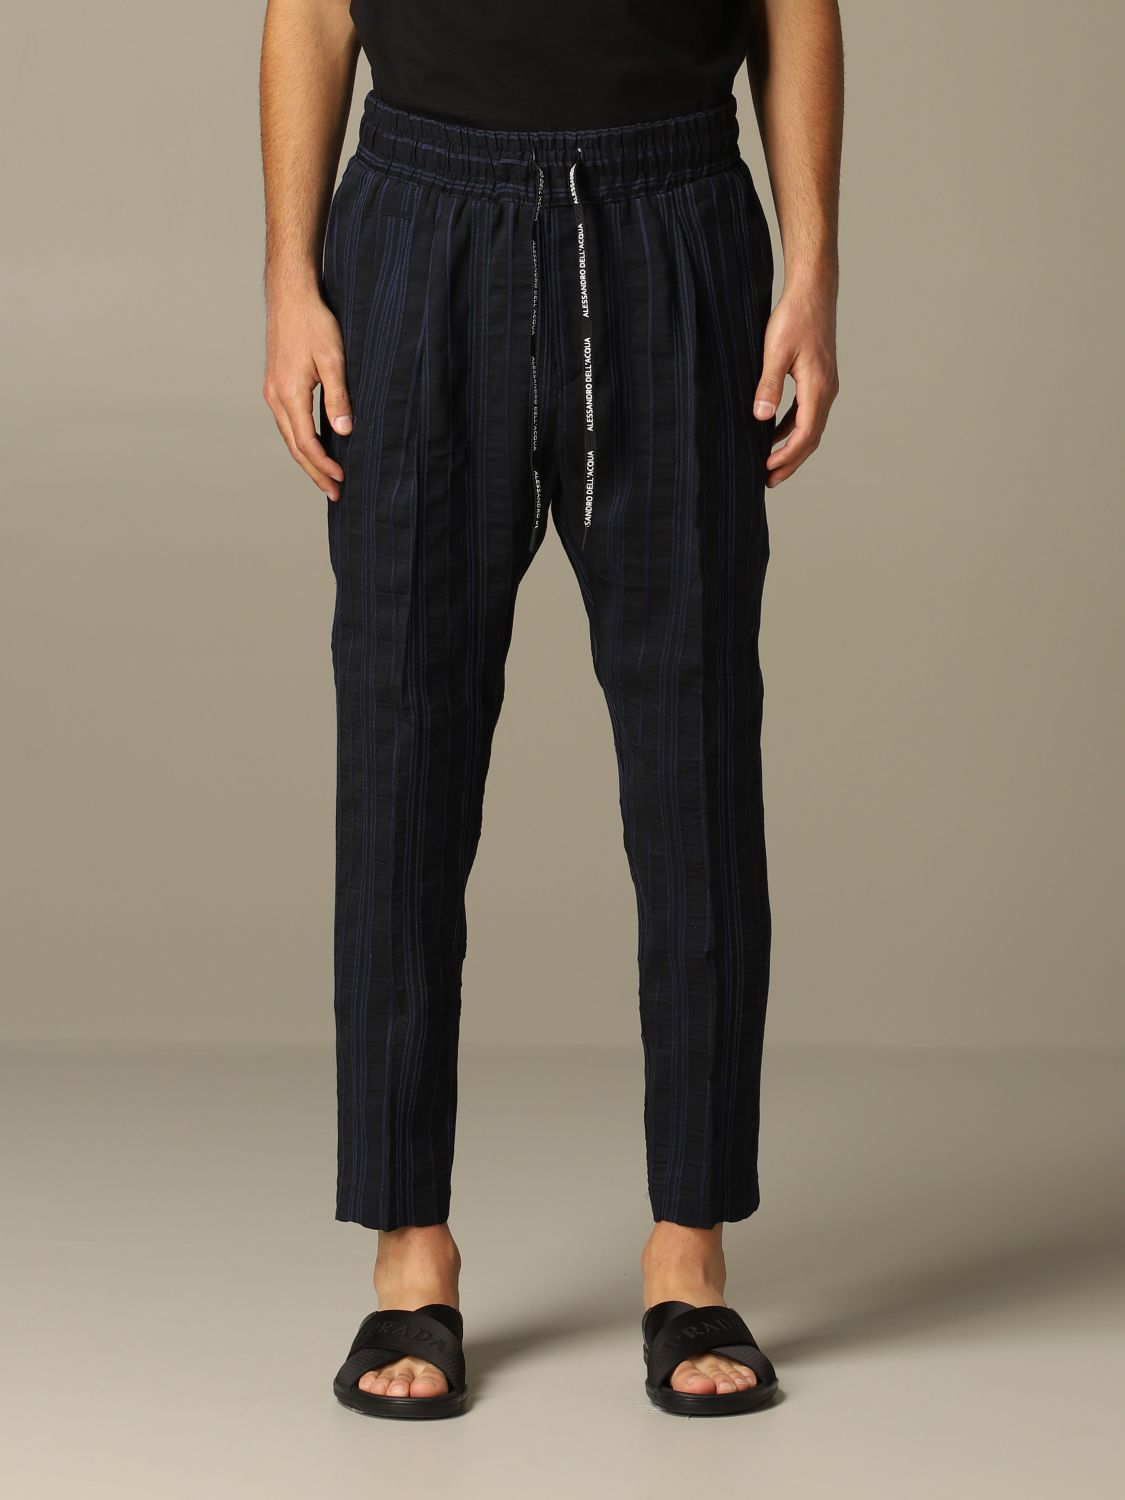 Pants Alessandro Dell'acqua: Alessandro Dell'acqua trousers in striped linen blend blue 1